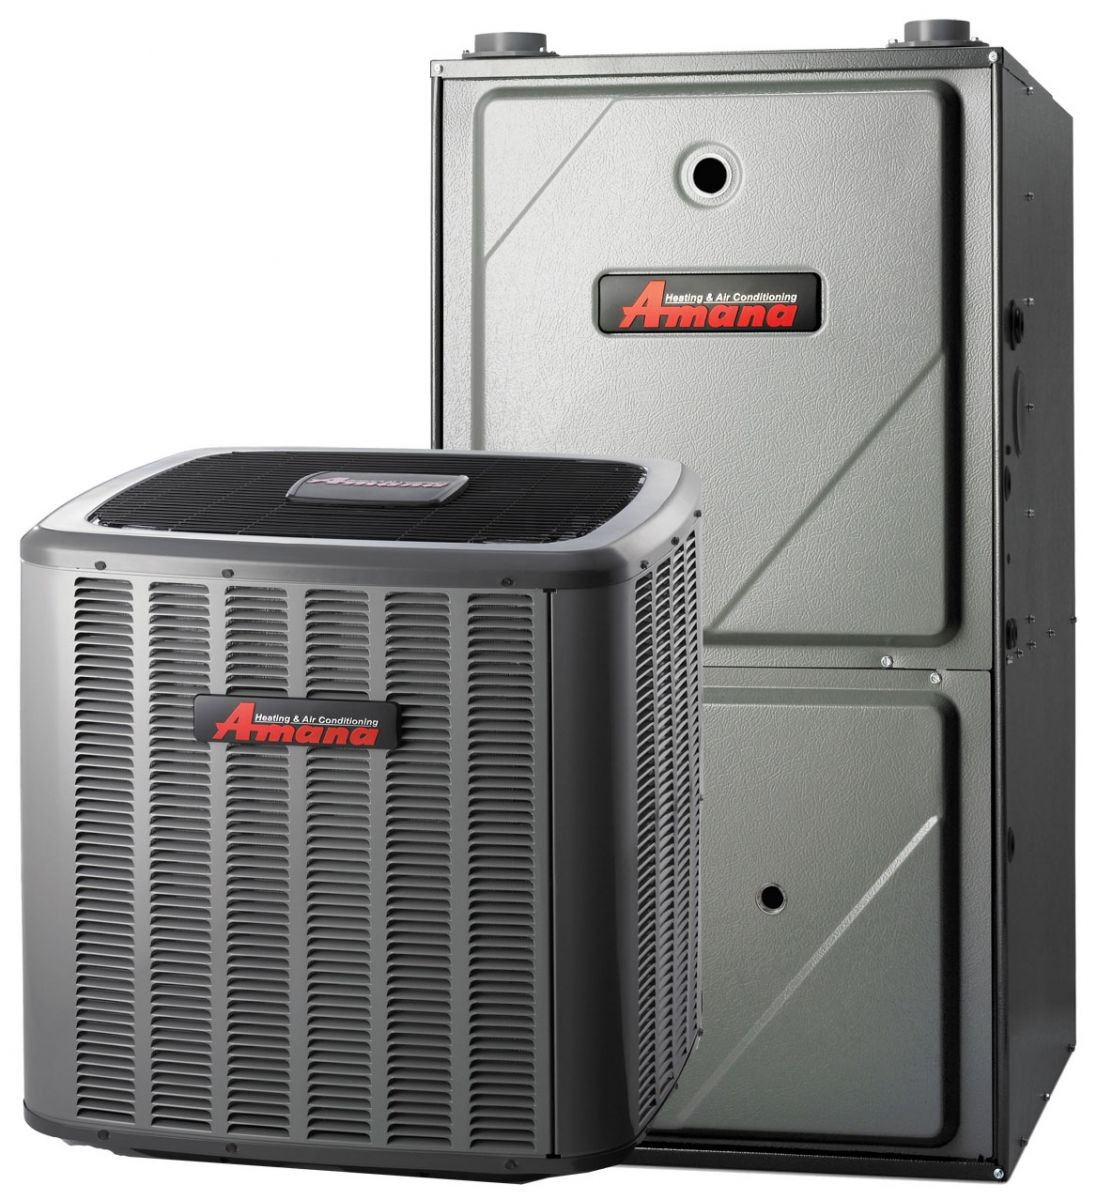 Image Result For Furnace Air Conditioner Combo